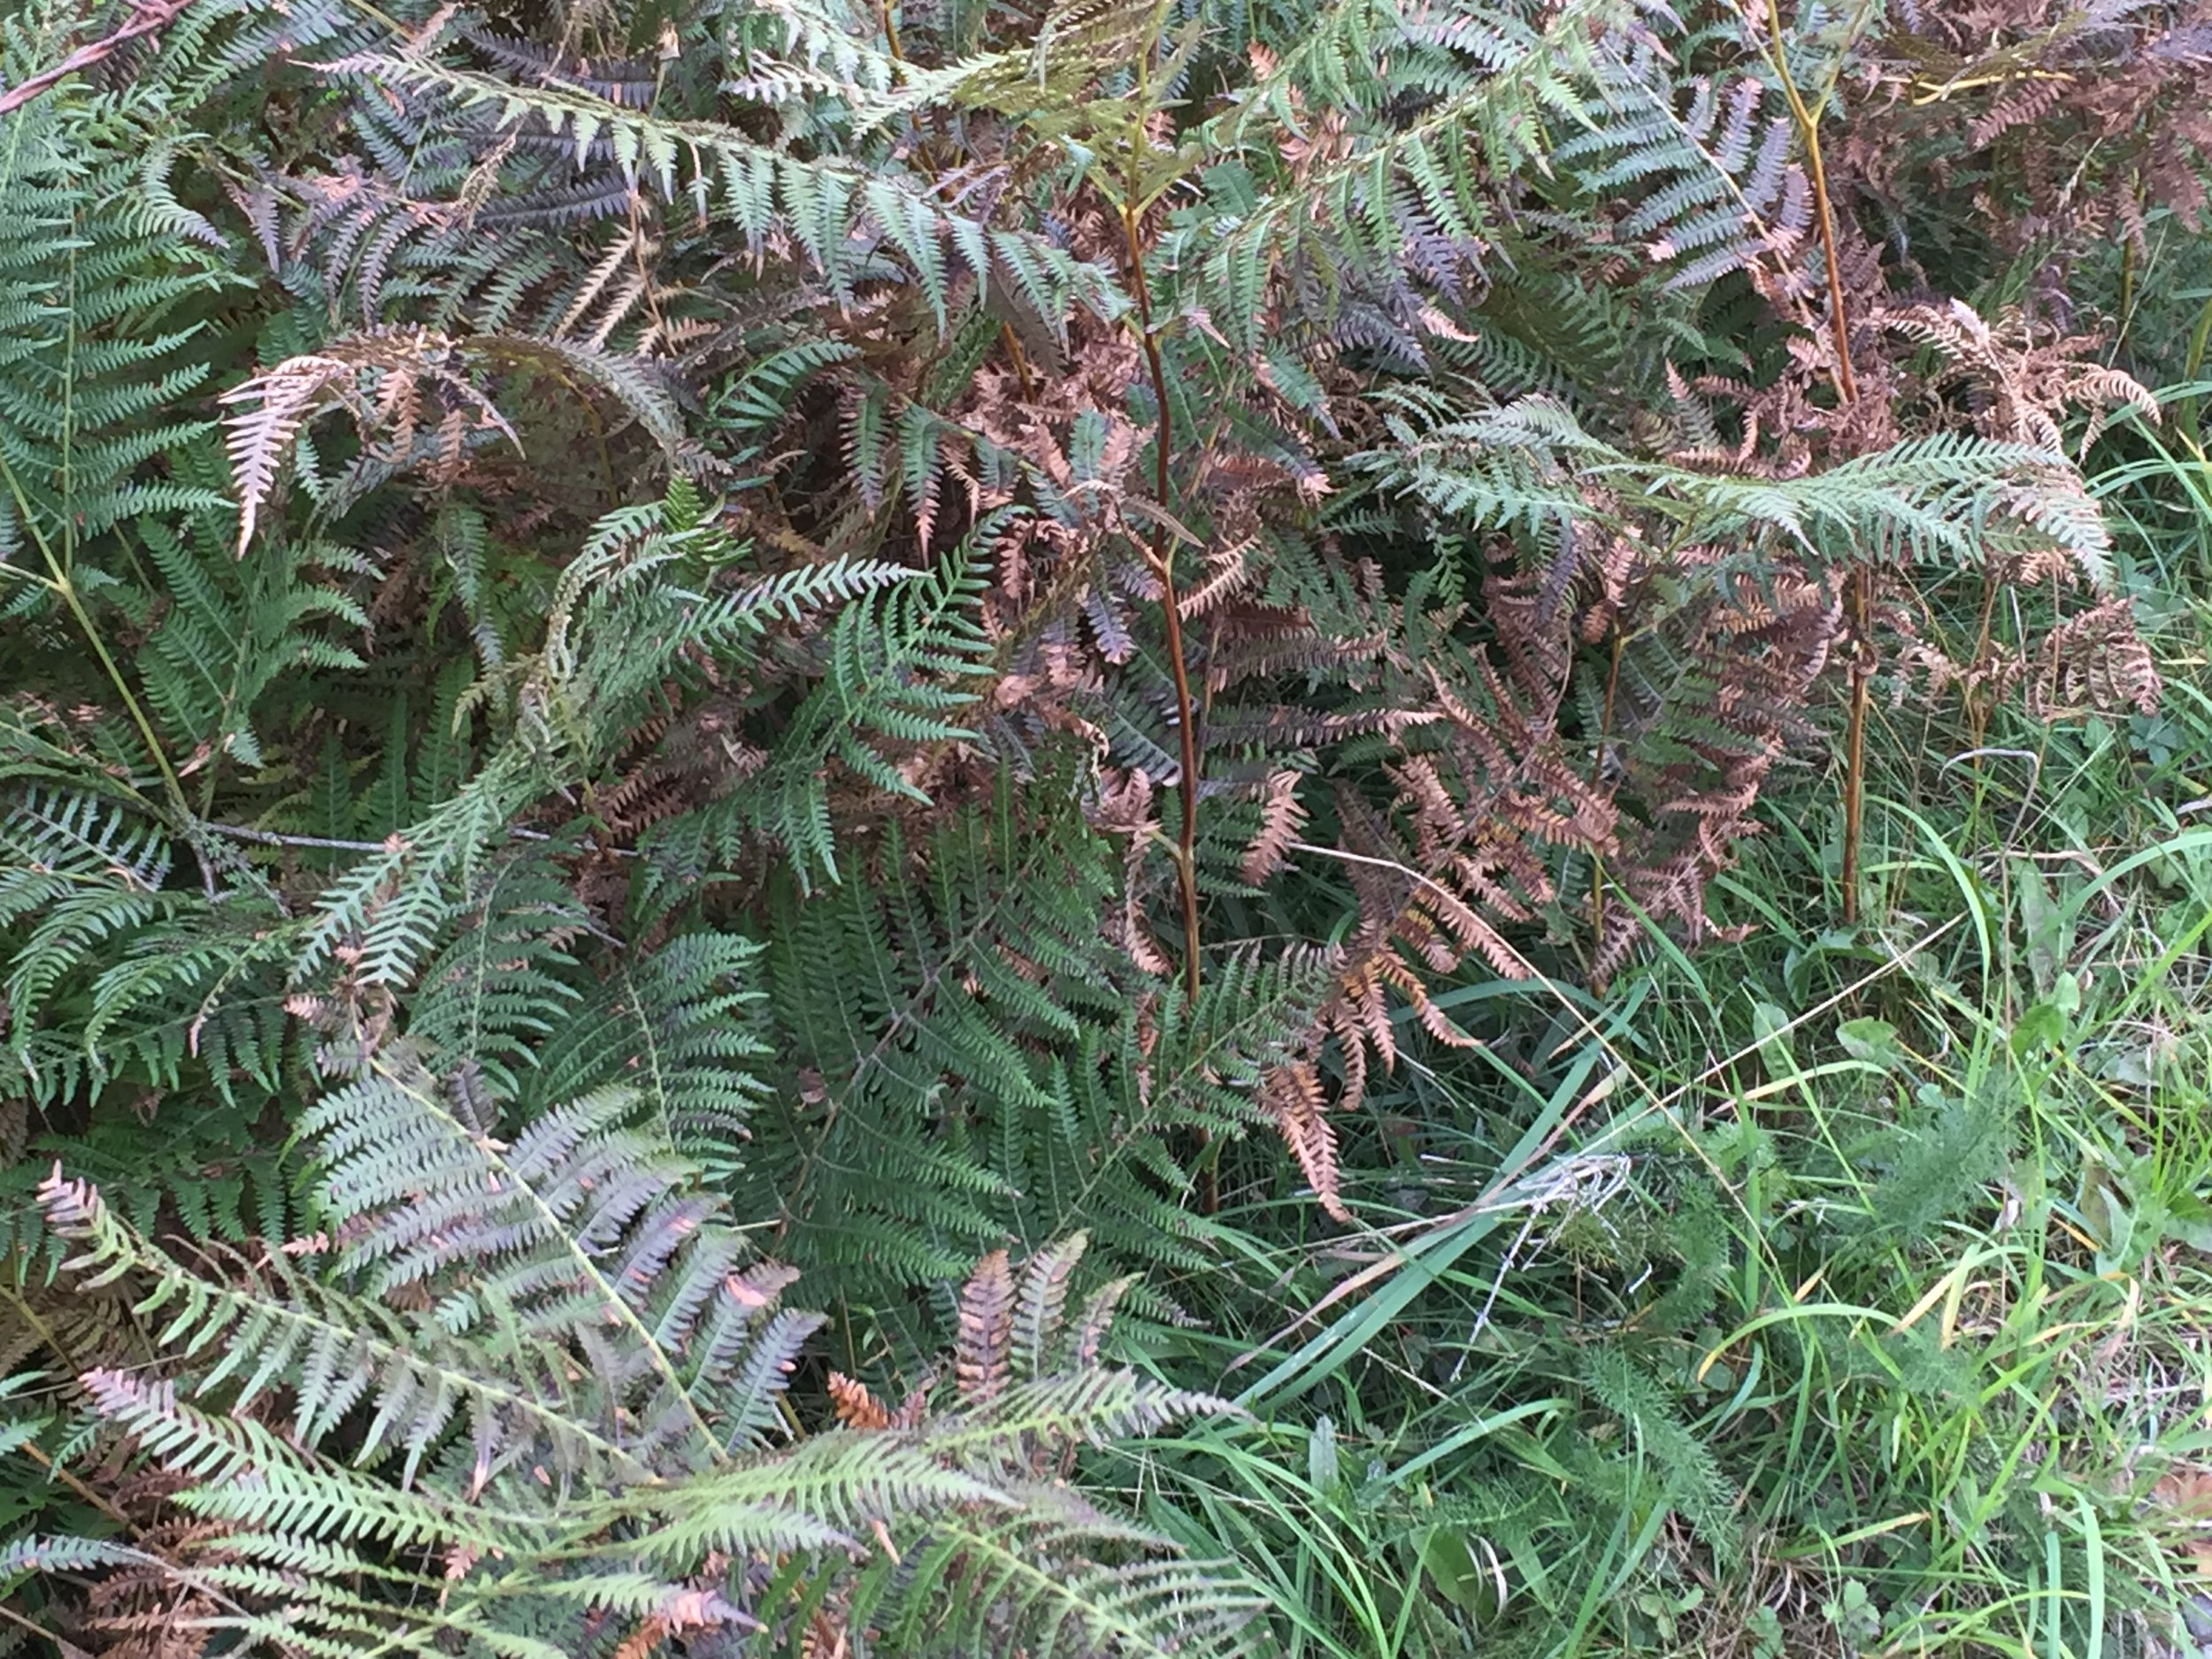 Bracken along the edges of lanes is beginning to turn brown and die off in late September.